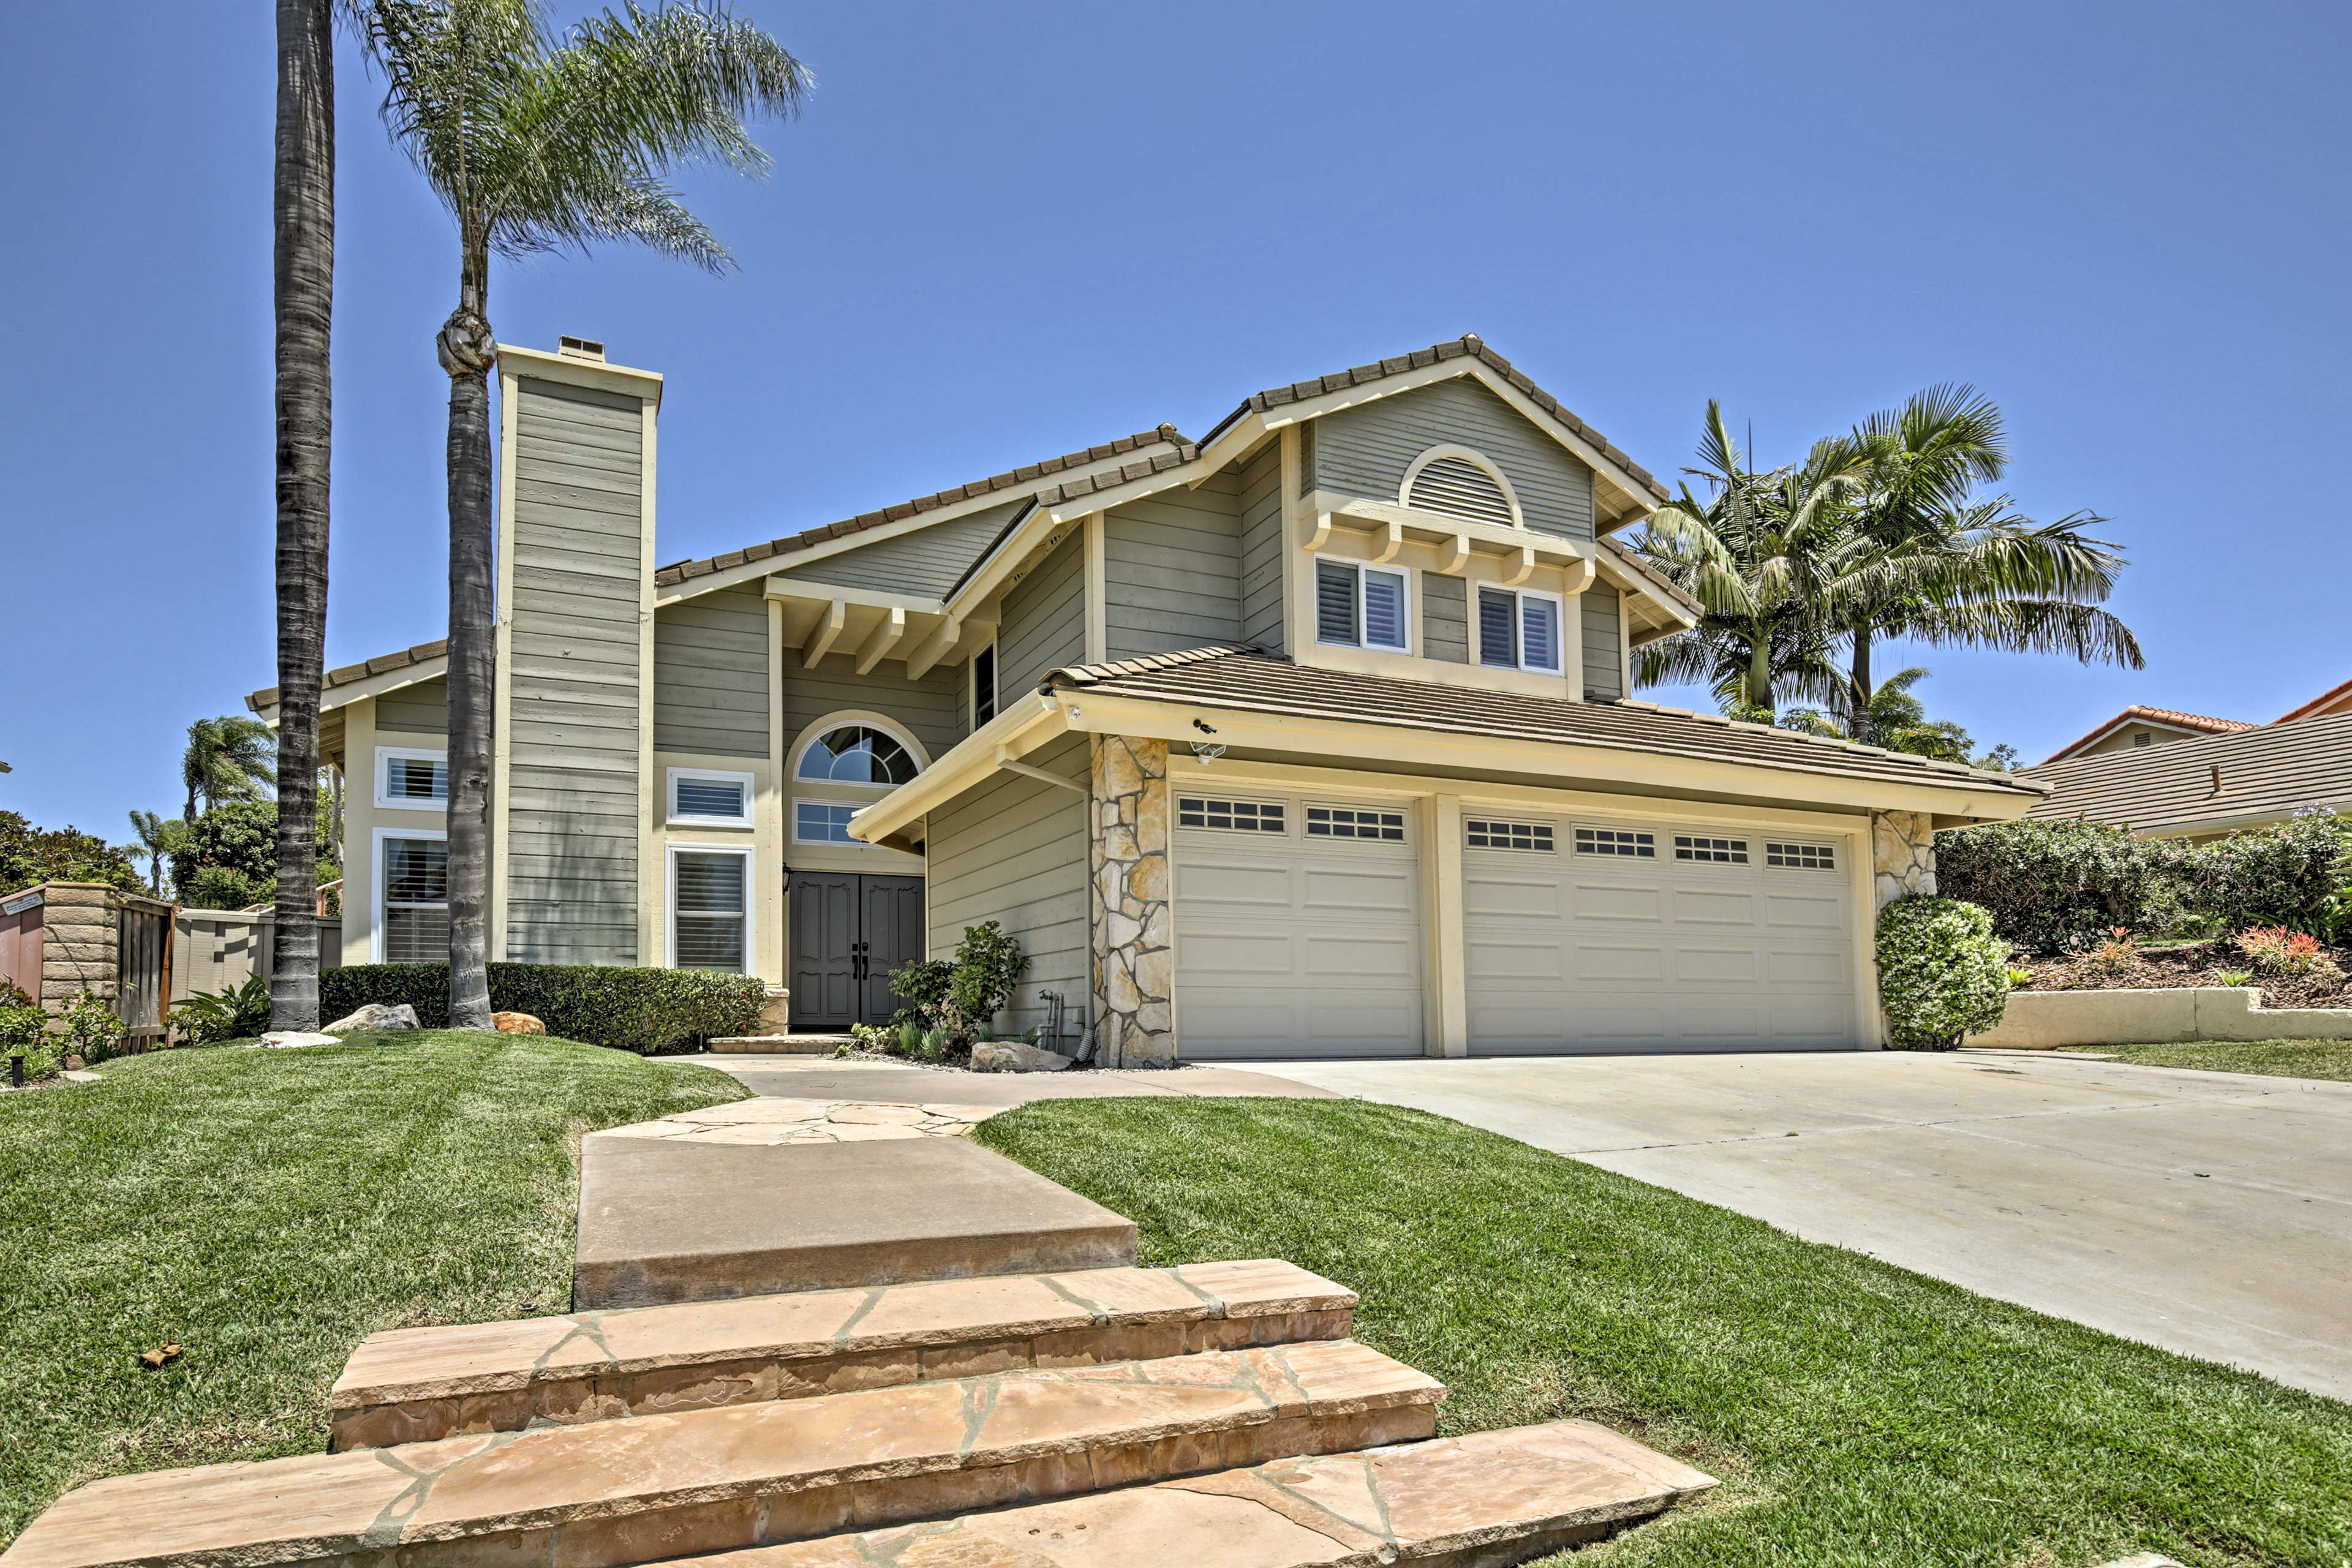 This lovely San Diego abode sleeps 10 just 10 minutes from Del Mar Beach!